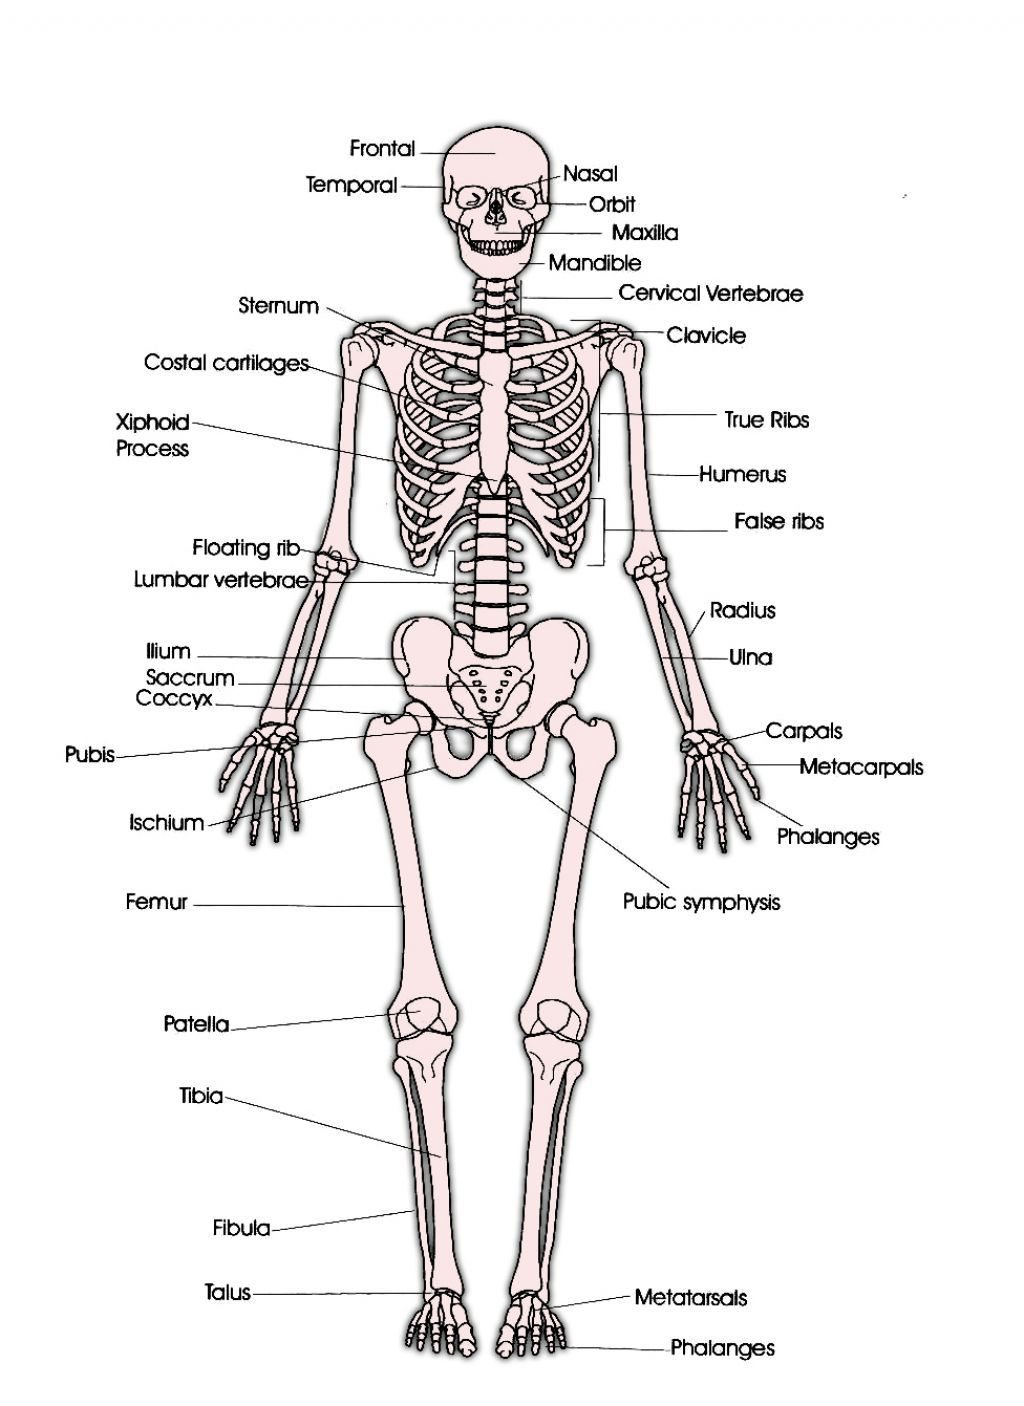 unlabeled diagram of the human skeleton unlabeled diagram of the human skeleton skeletal system unlabeled [ 1024 x 1406 Pixel ]